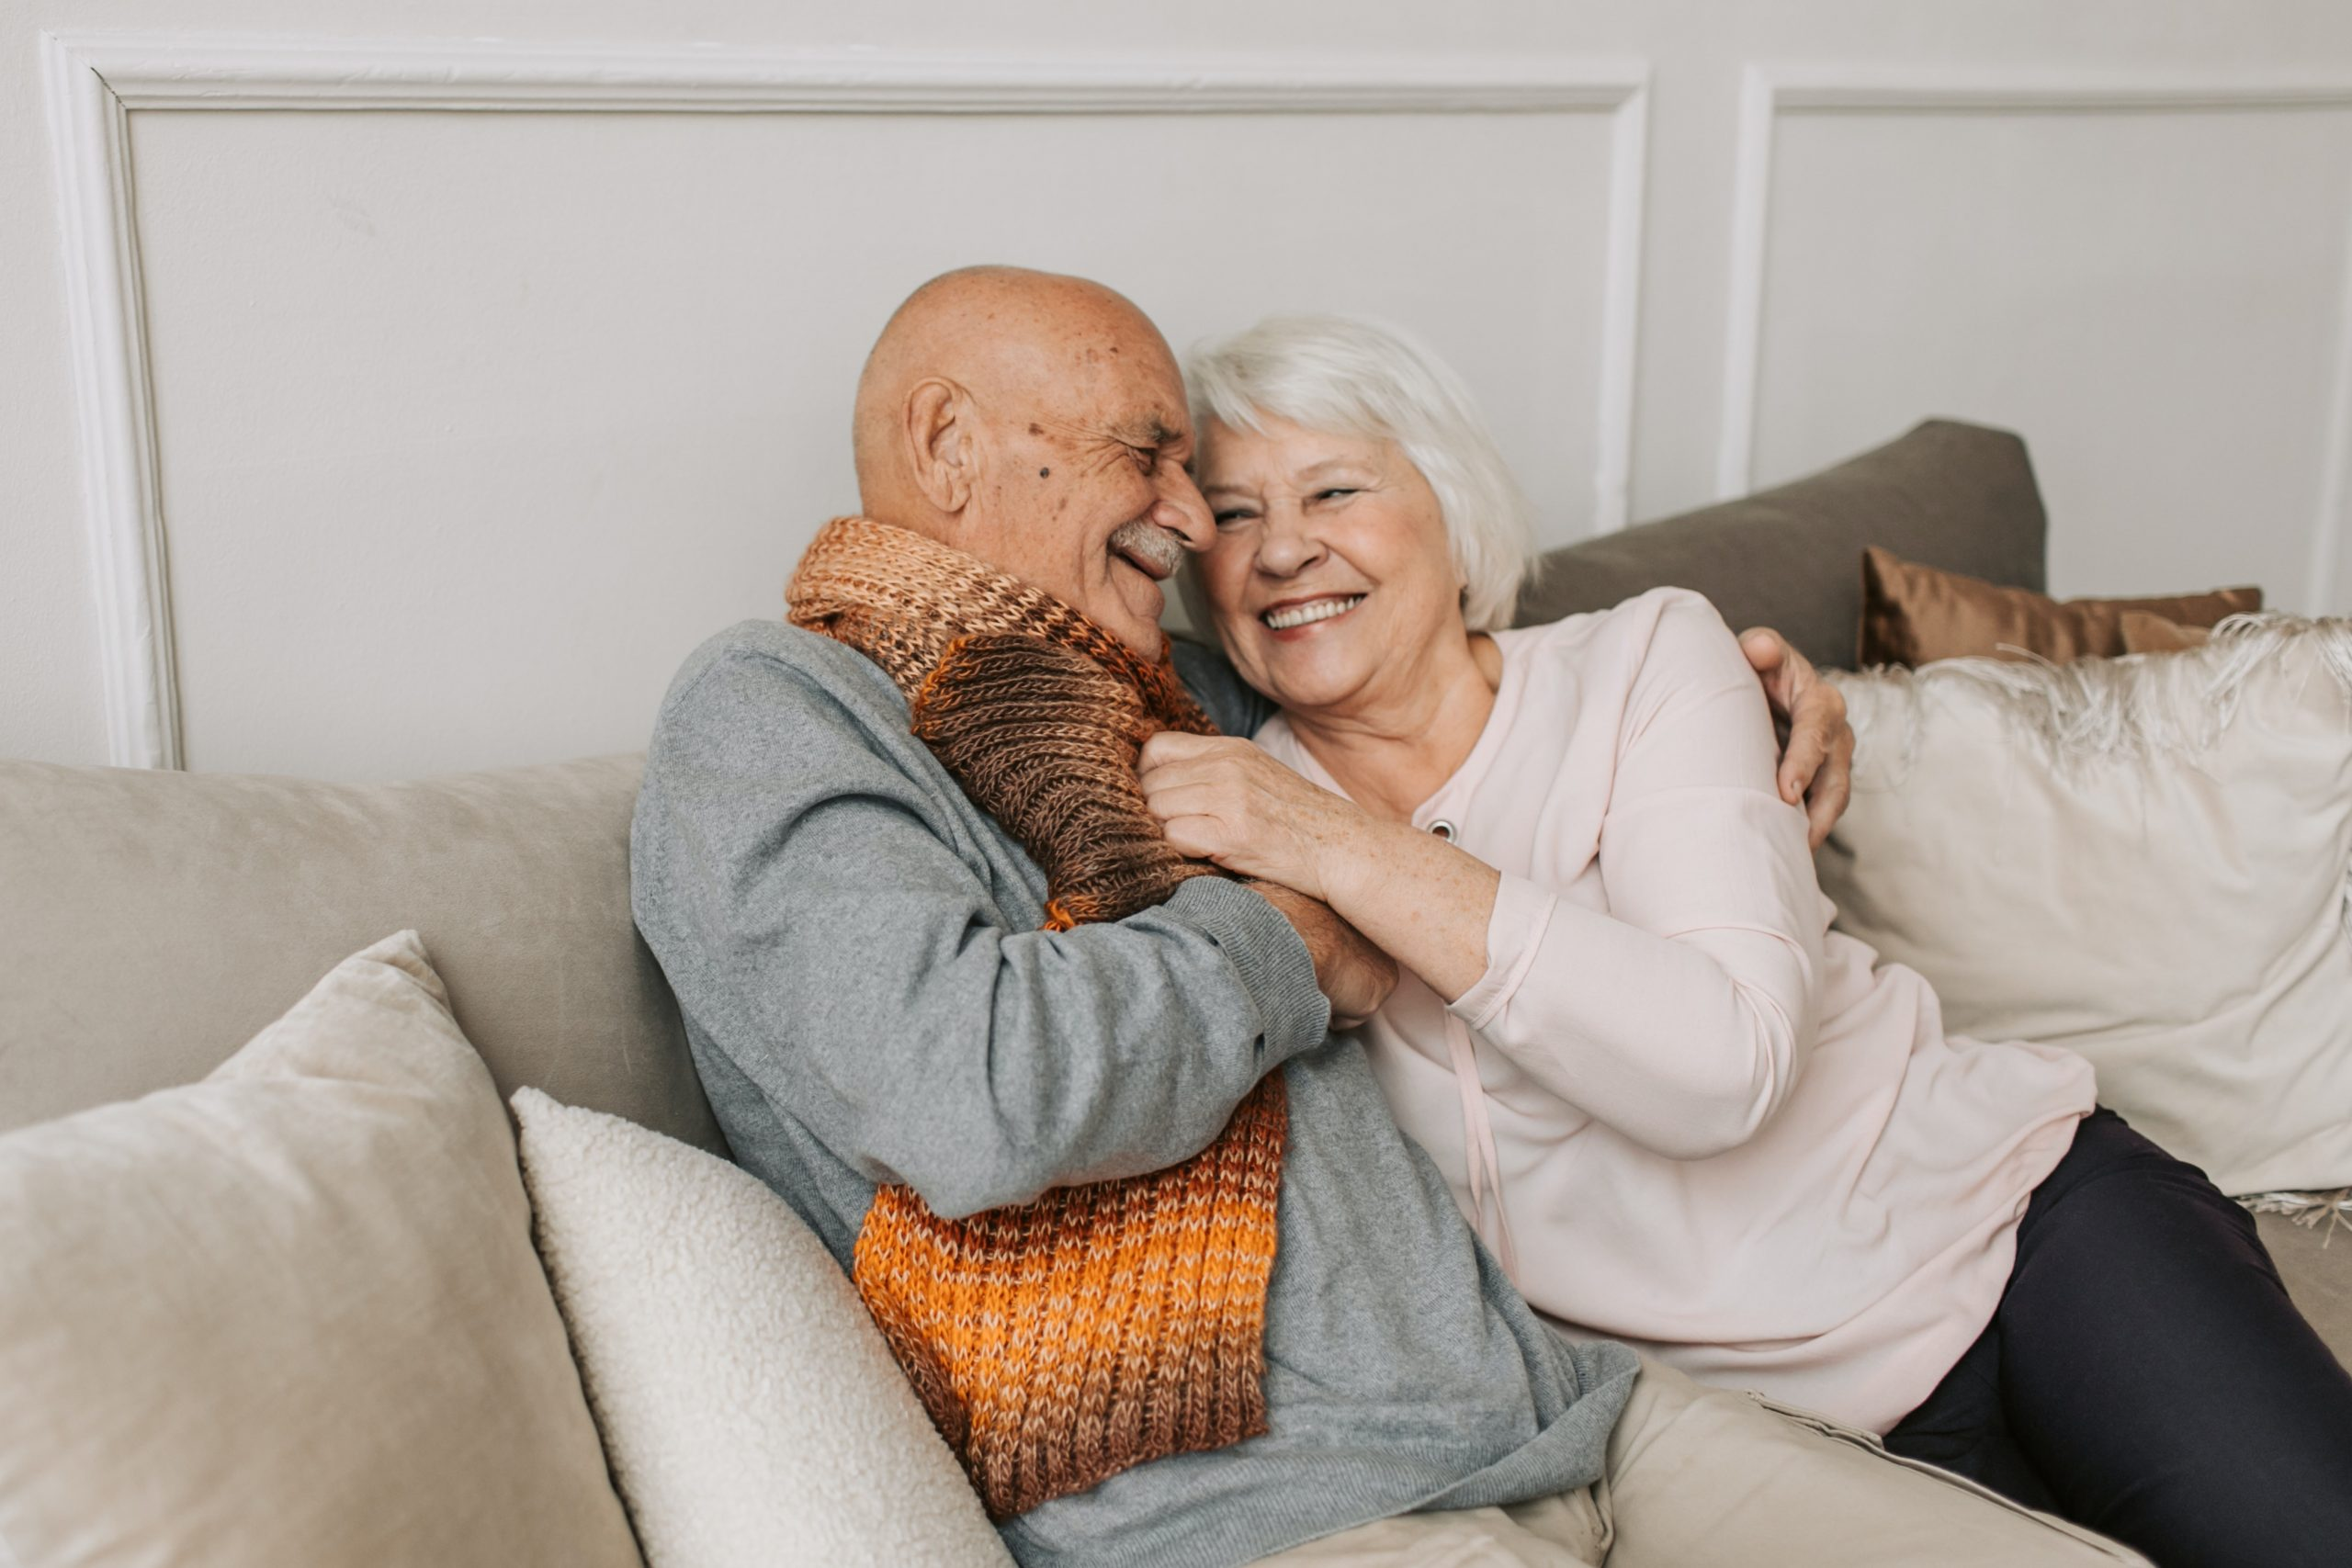 Elderly couple sat smiling and cuddling on a sofa